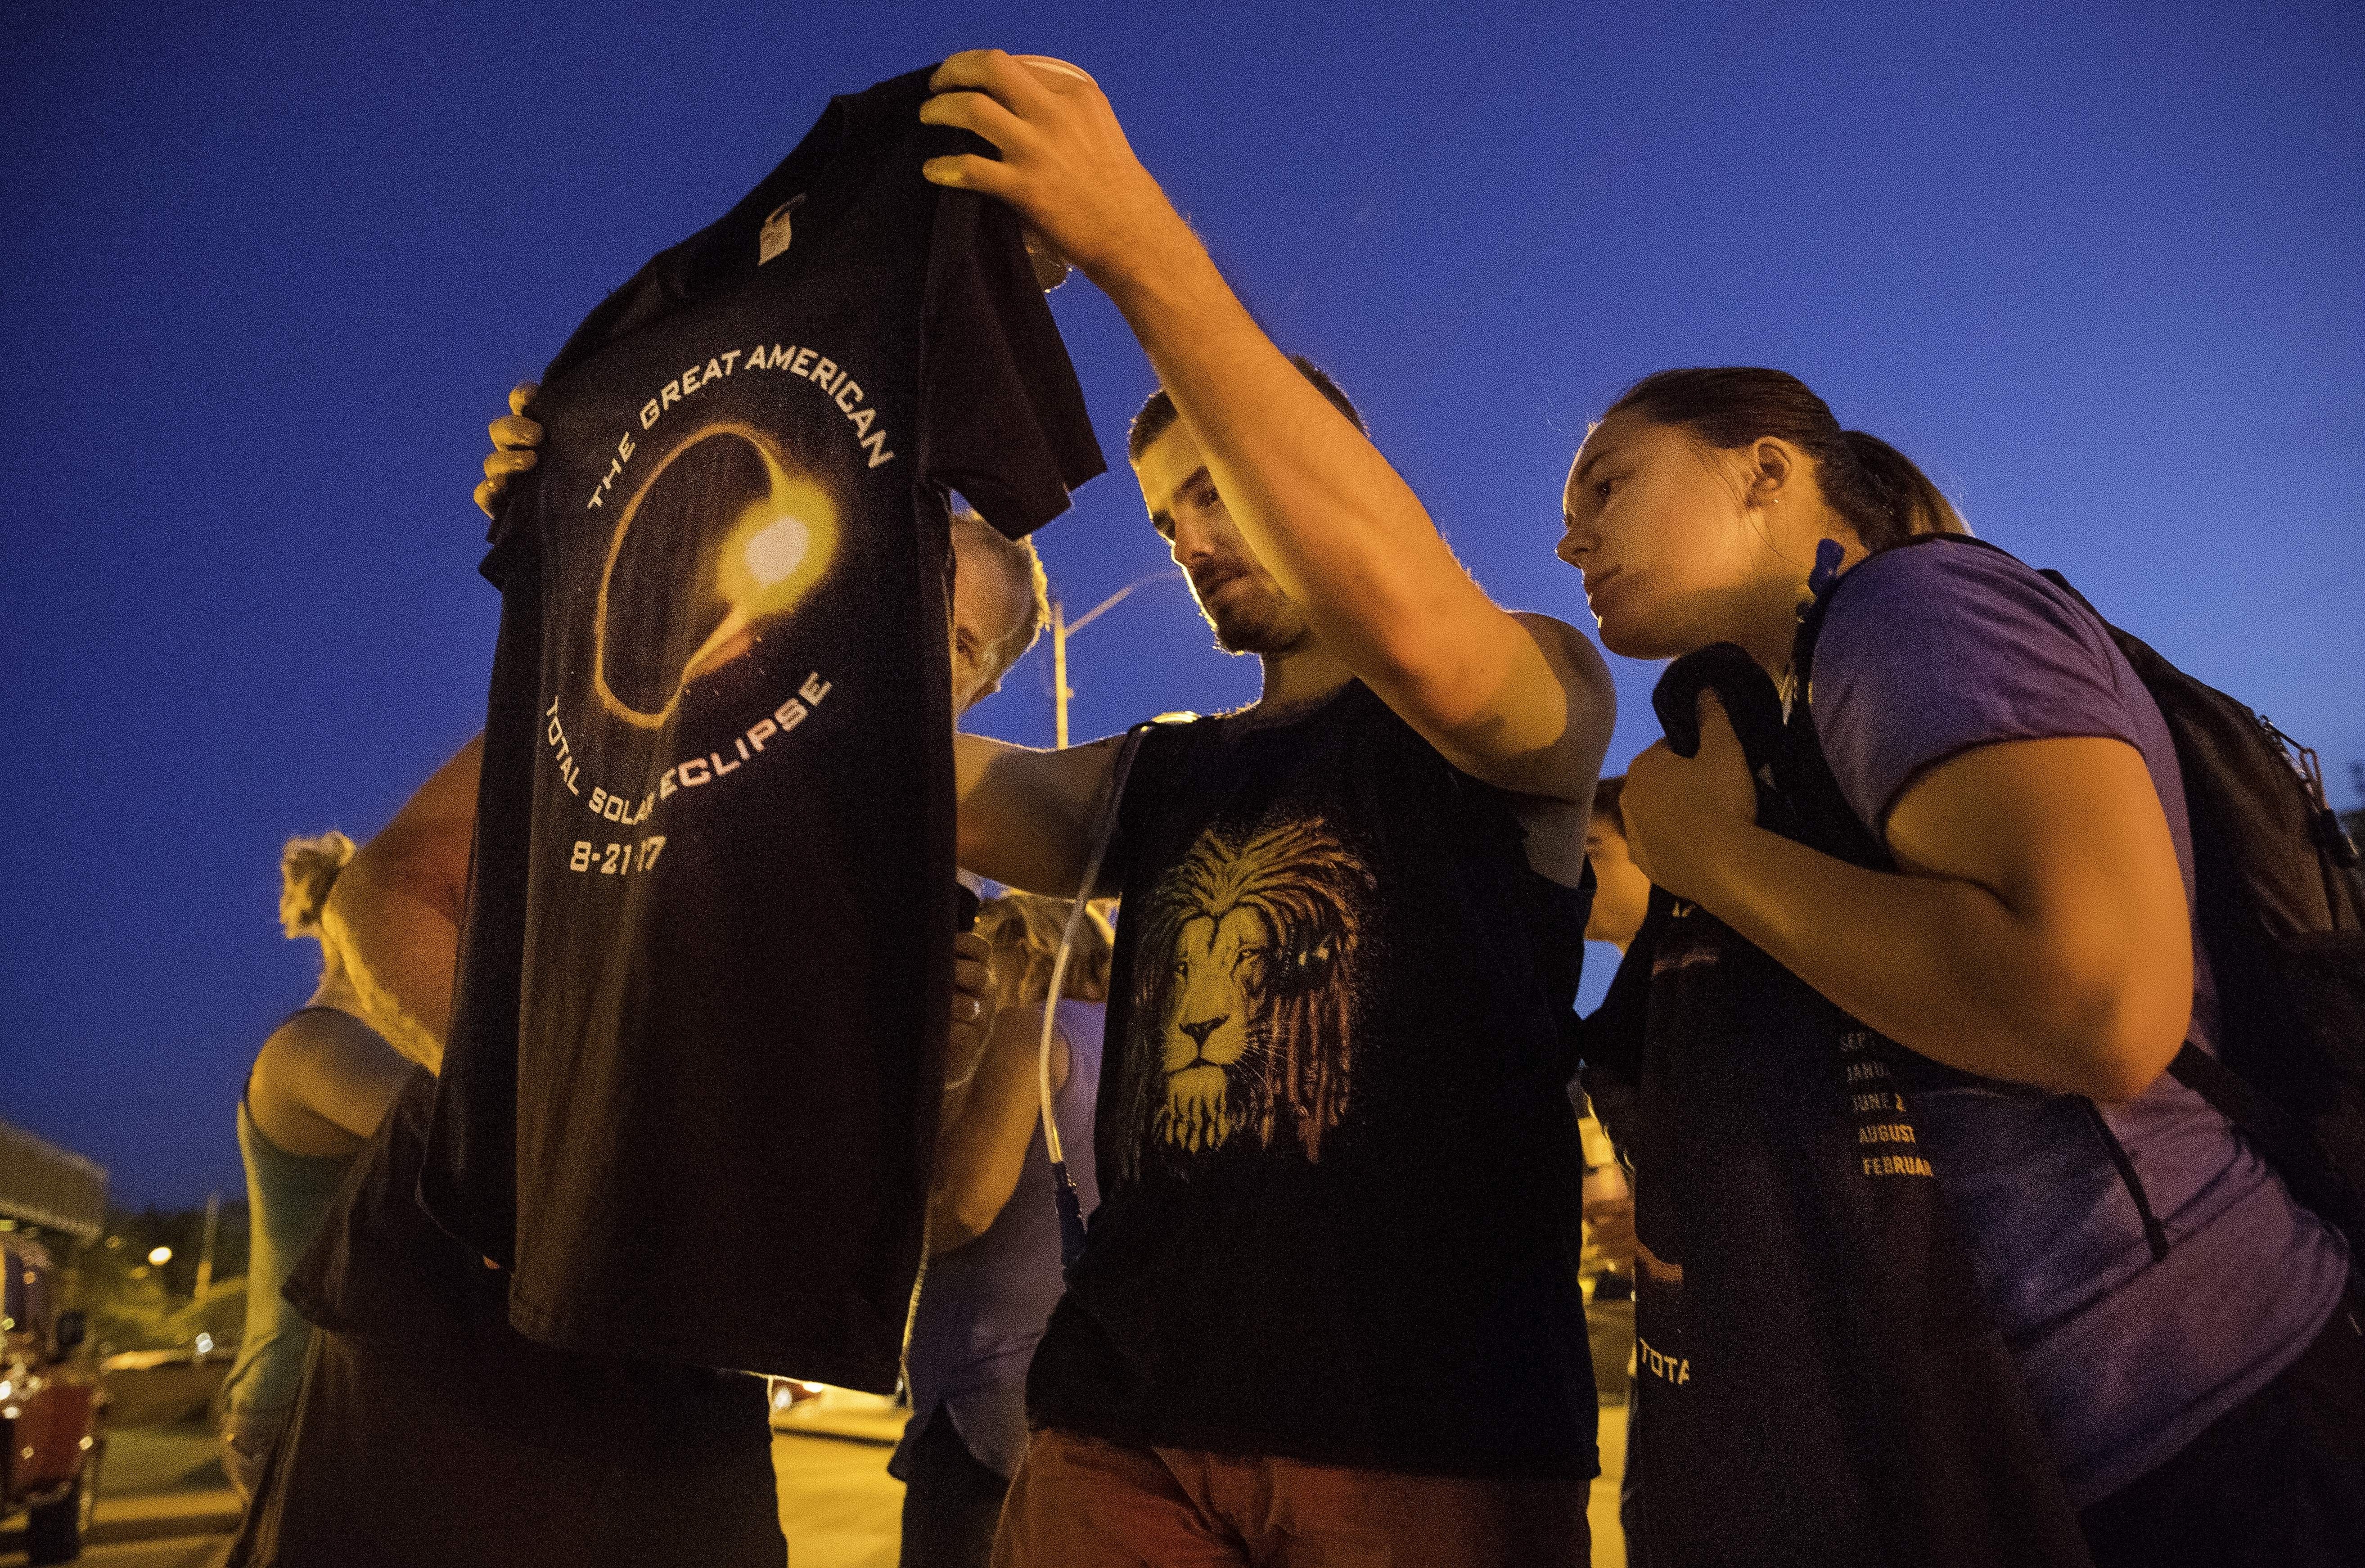 Southern Illinois University Carbondale students Kyle Kruckeberg, left, and Olivia Hajnos inspect their new eclipse t-shirt after picking one up on The Strip Sunday, Aug. 20, 2017. [Ted Schurter/The State Journal-Register]